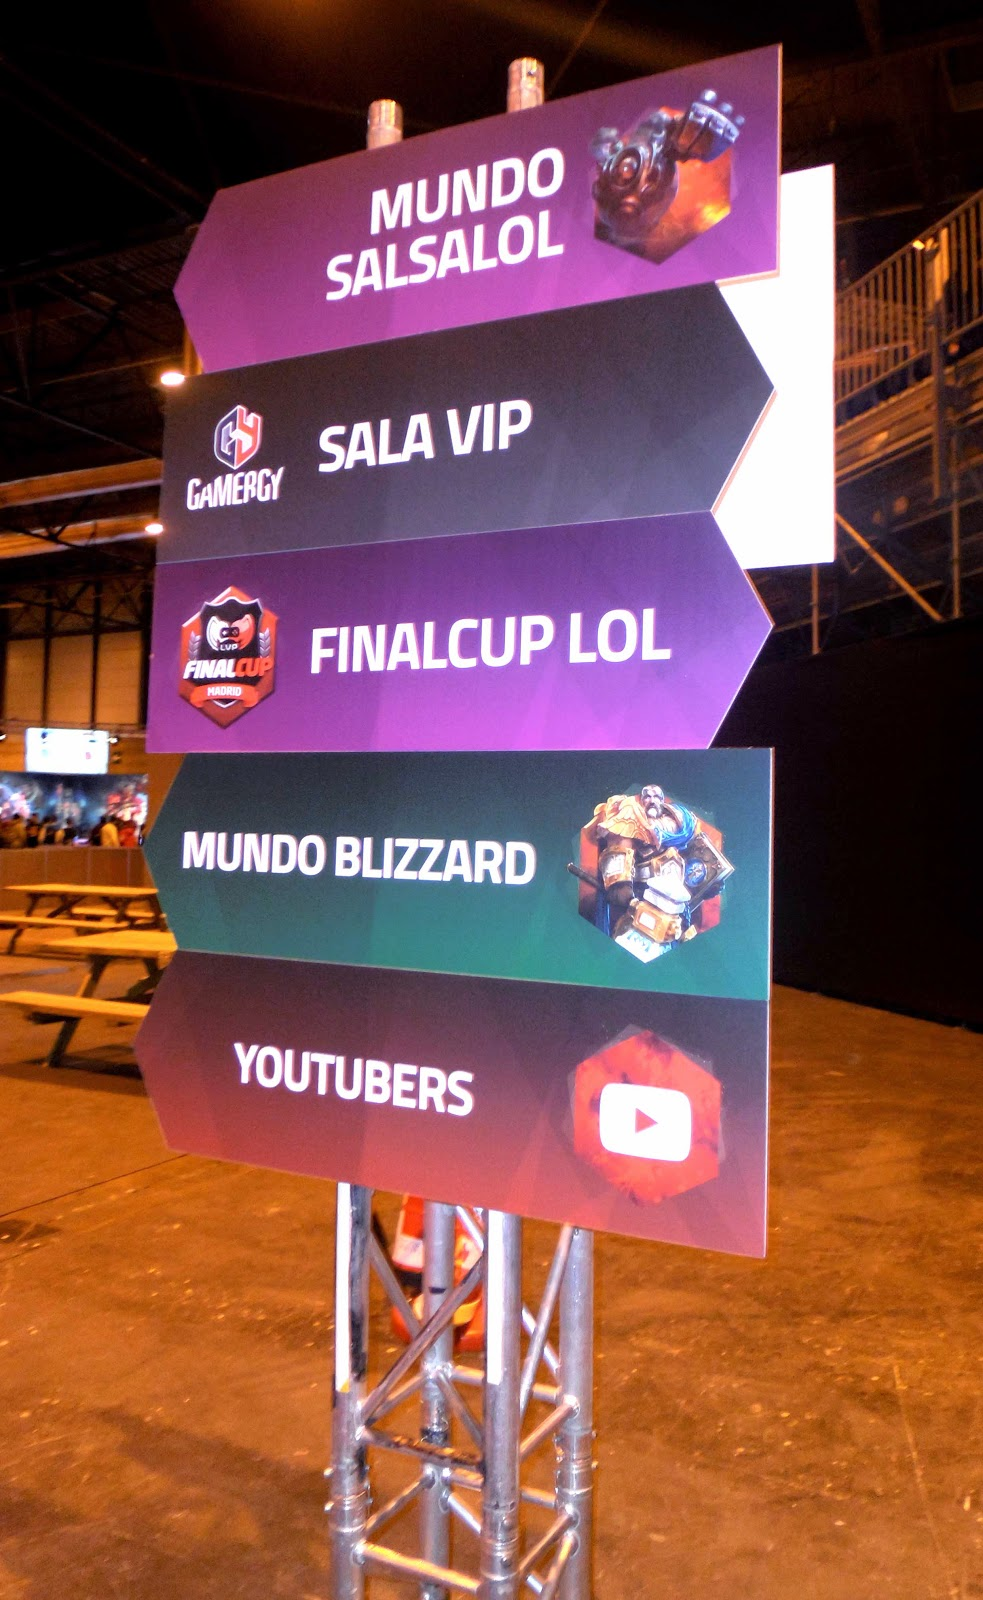 gamergy madrid 2014 mundos